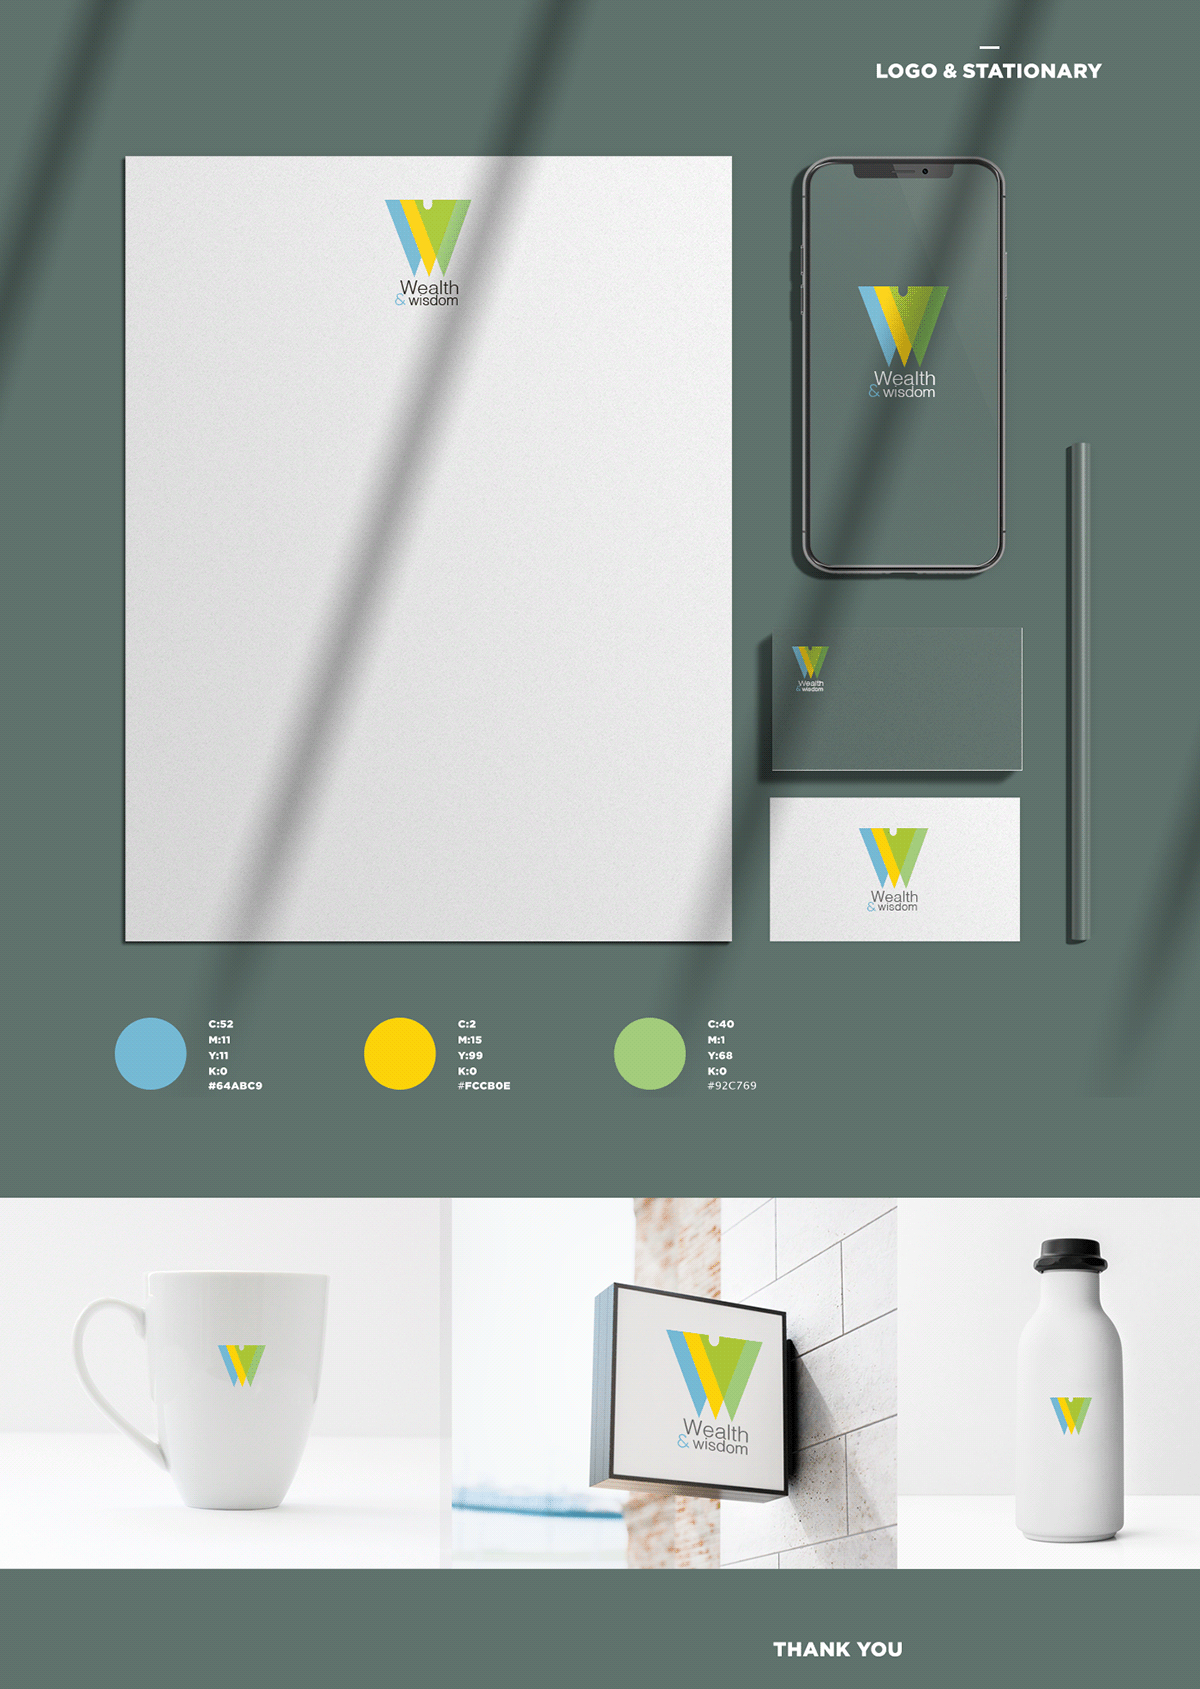 corparate Corporate Identity graphic design  green logo Logo Design namecard sign stationary